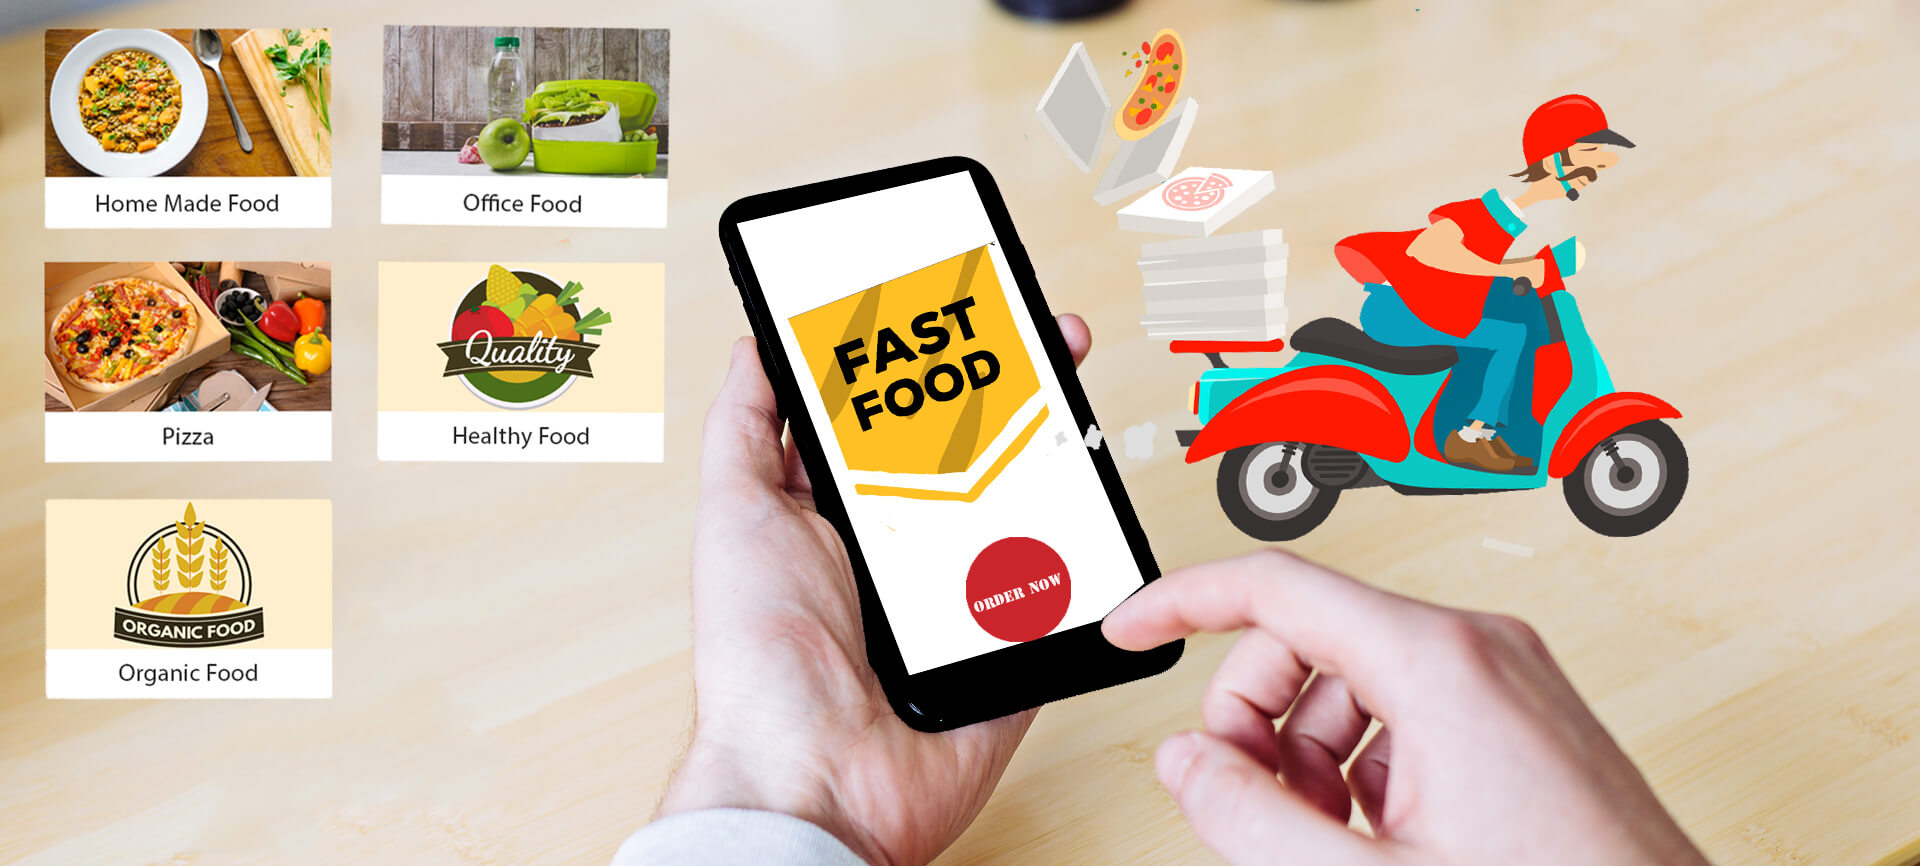 Order resume online food delivery